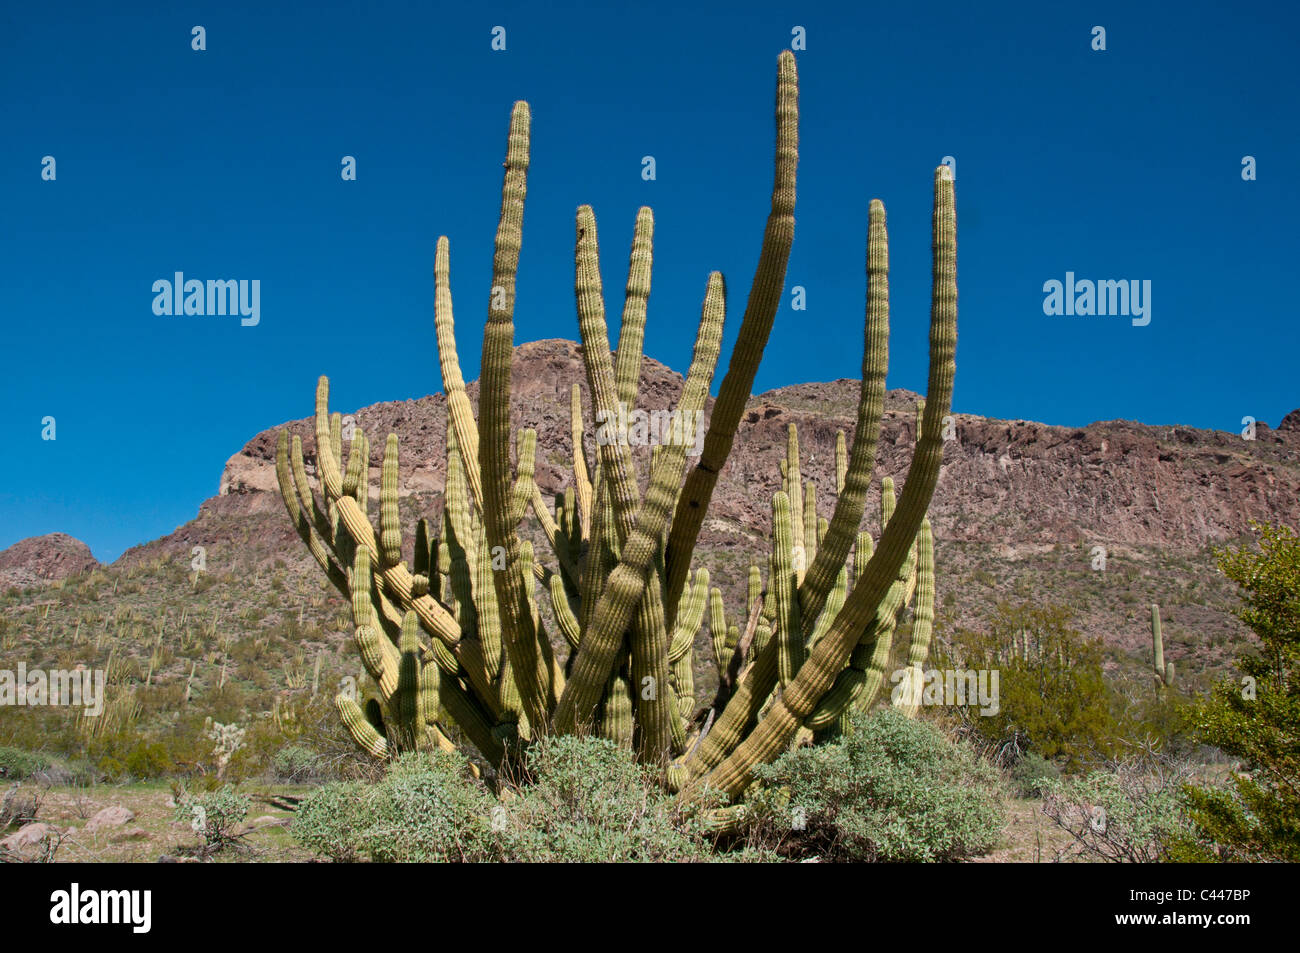 Organ pipe Cactus National Monument, Arizona, March, cactus, National Park, USA, America, North America, landscape - Stock Image